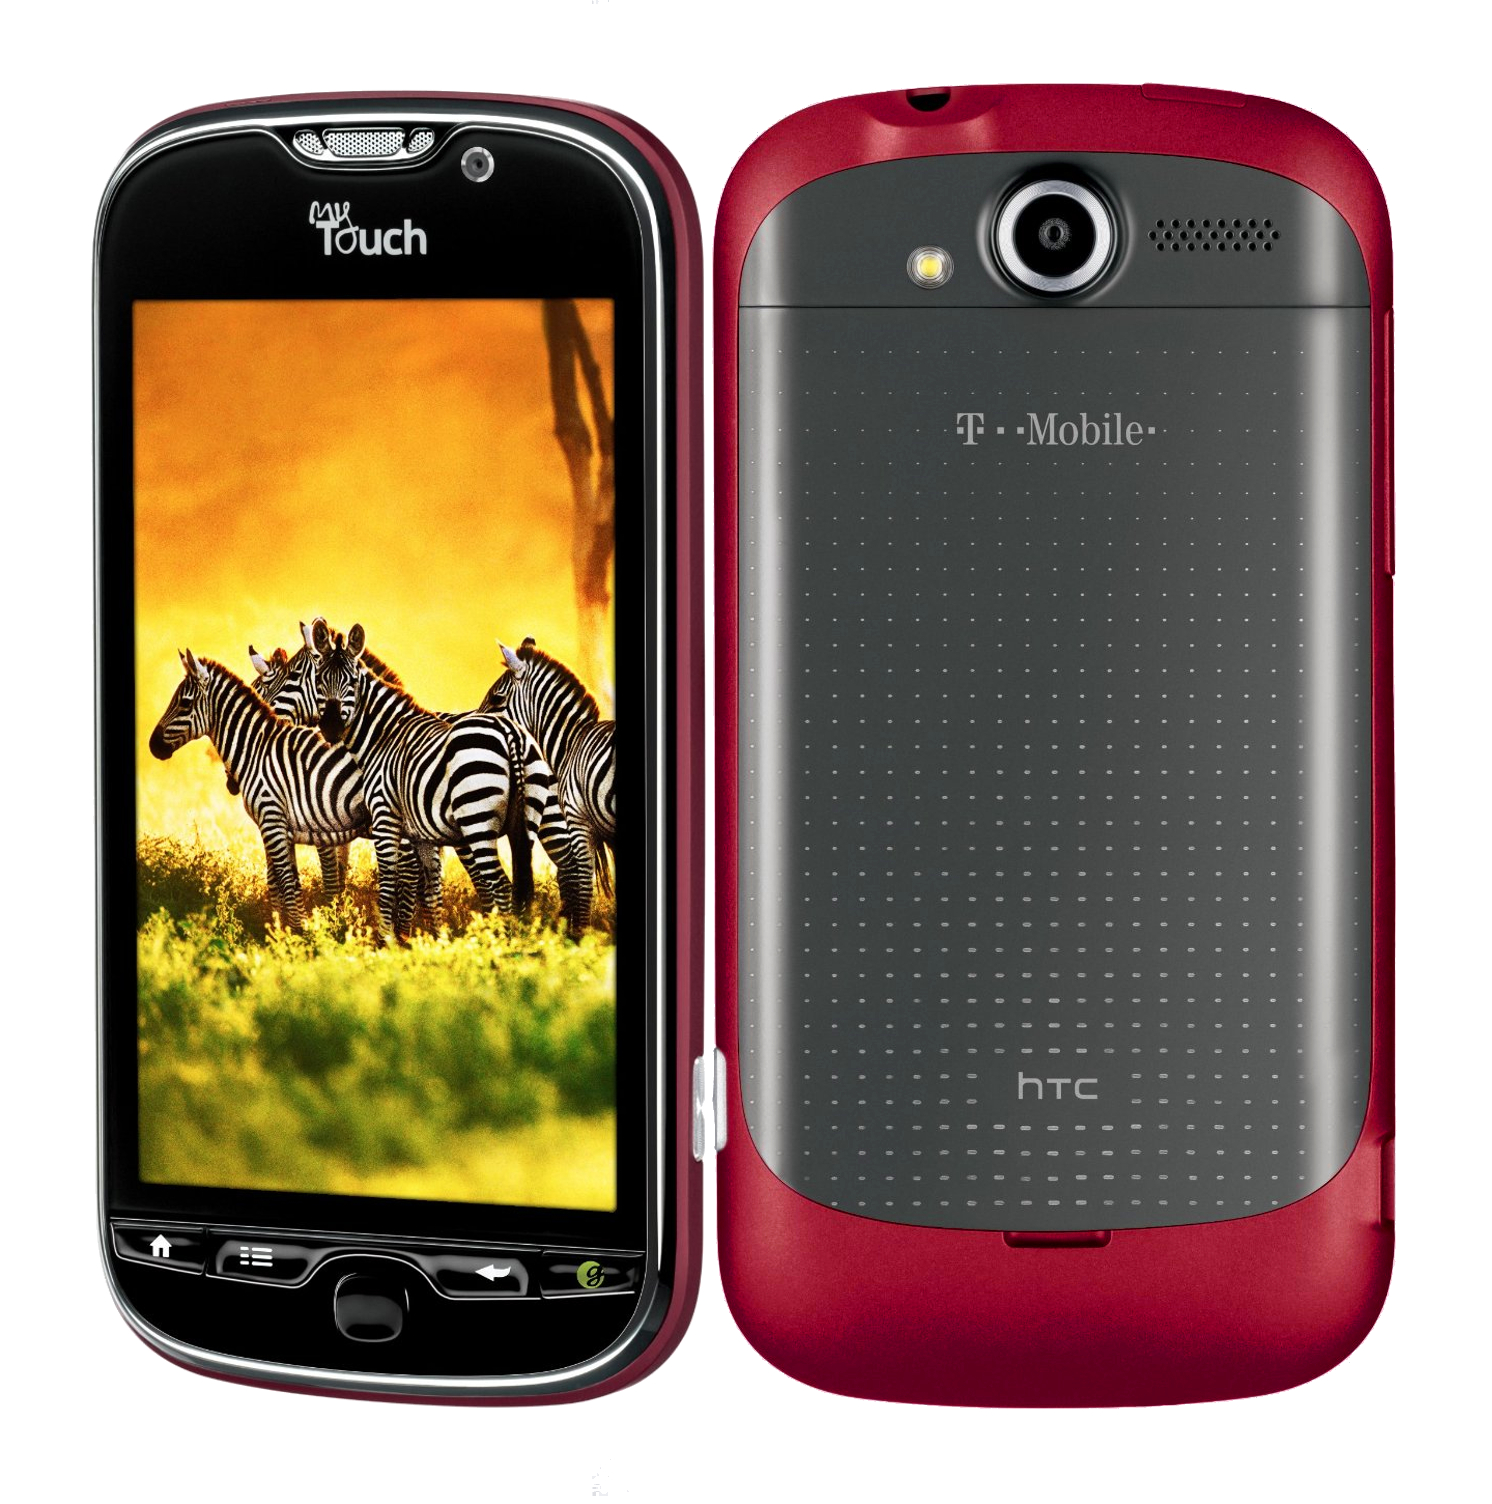 Phone Cheap Android T Mobile Phones htc mytouch 4g android smartphone t mobile red fair red